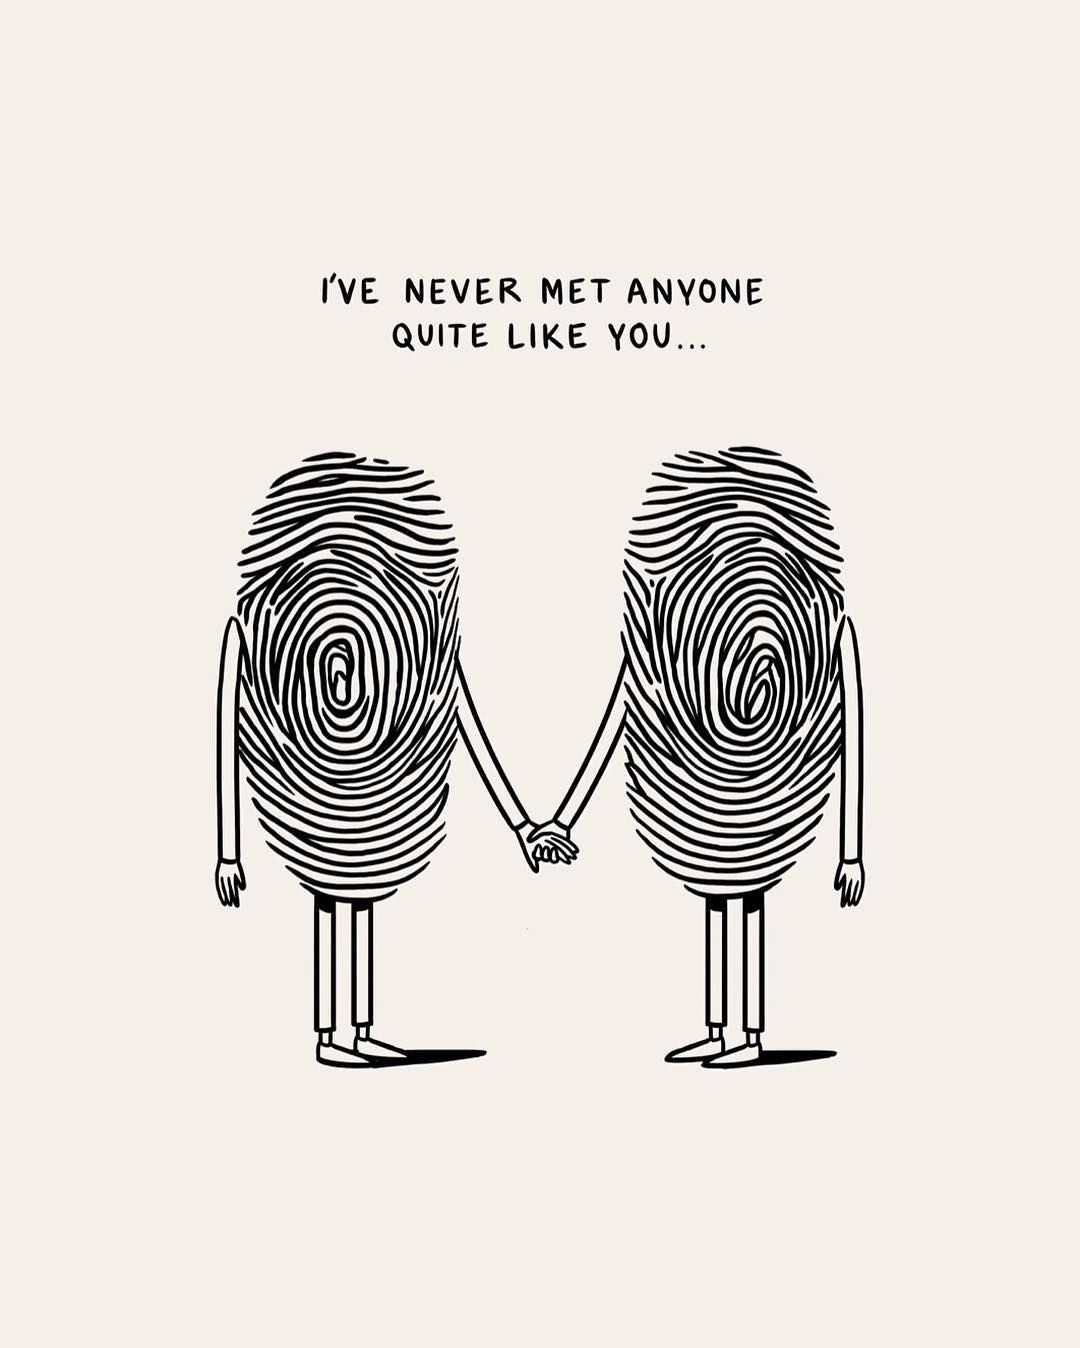 Sad Tumblr Quotes About Love: I've Never Met Anyone Quite Like You...